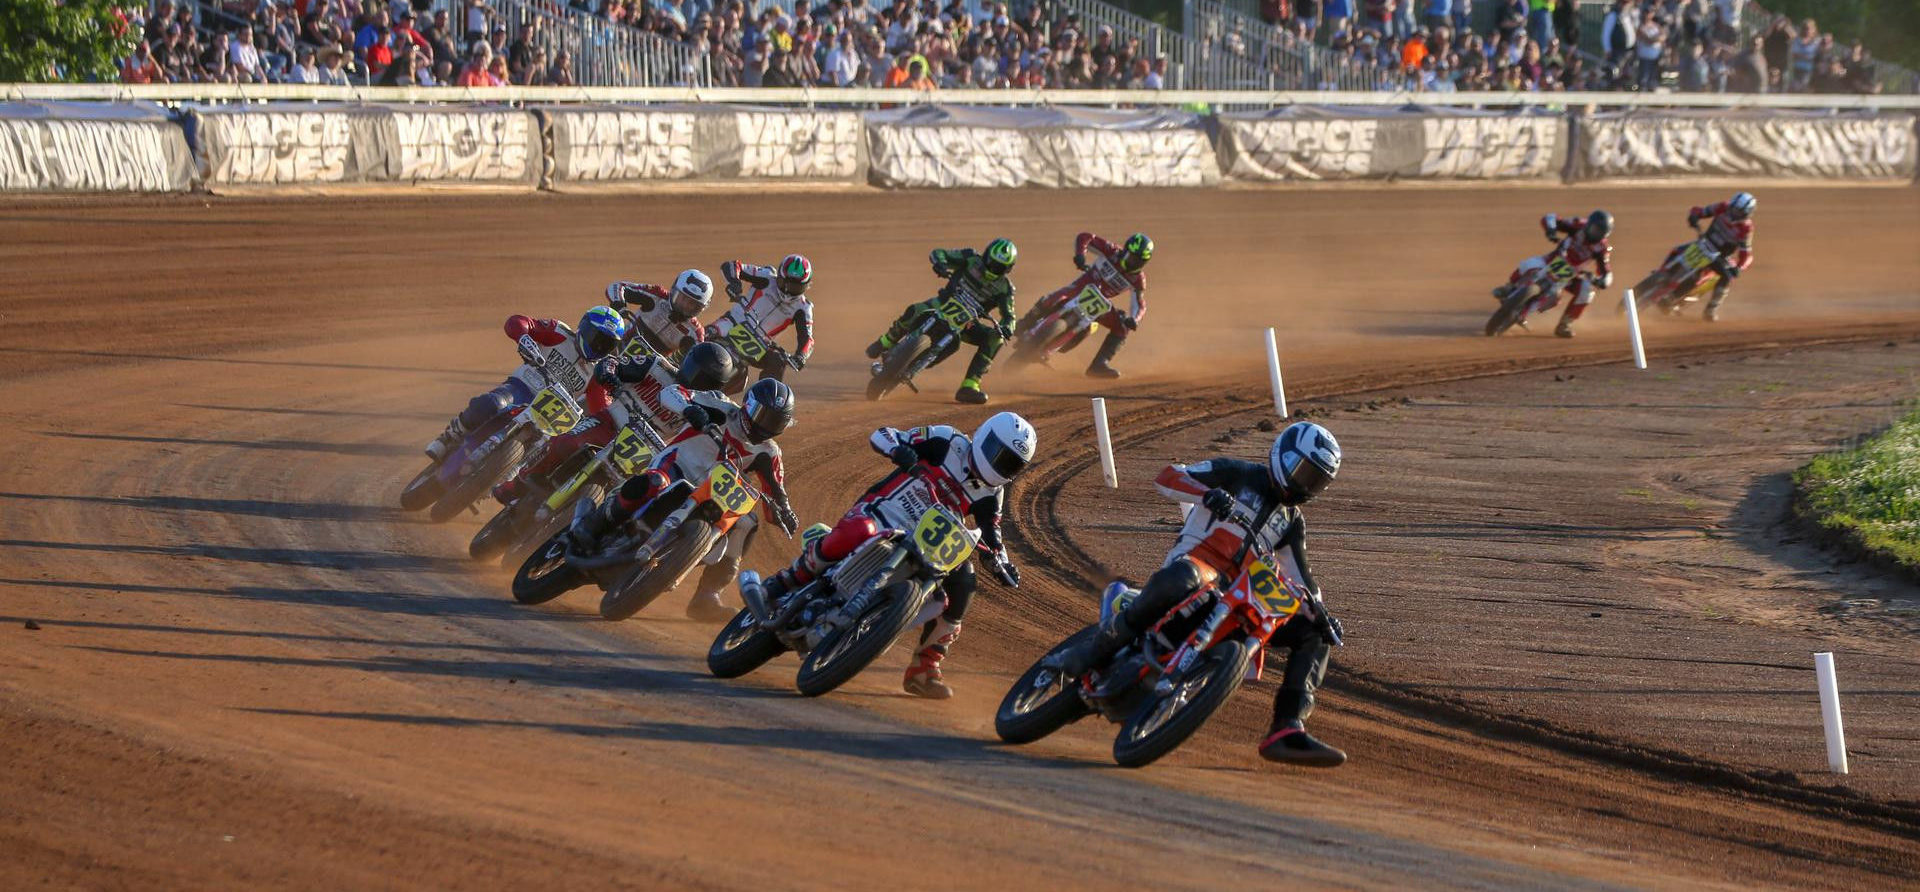 Action from an American Flat Track race in 2019. Photo courtesy of AFT.